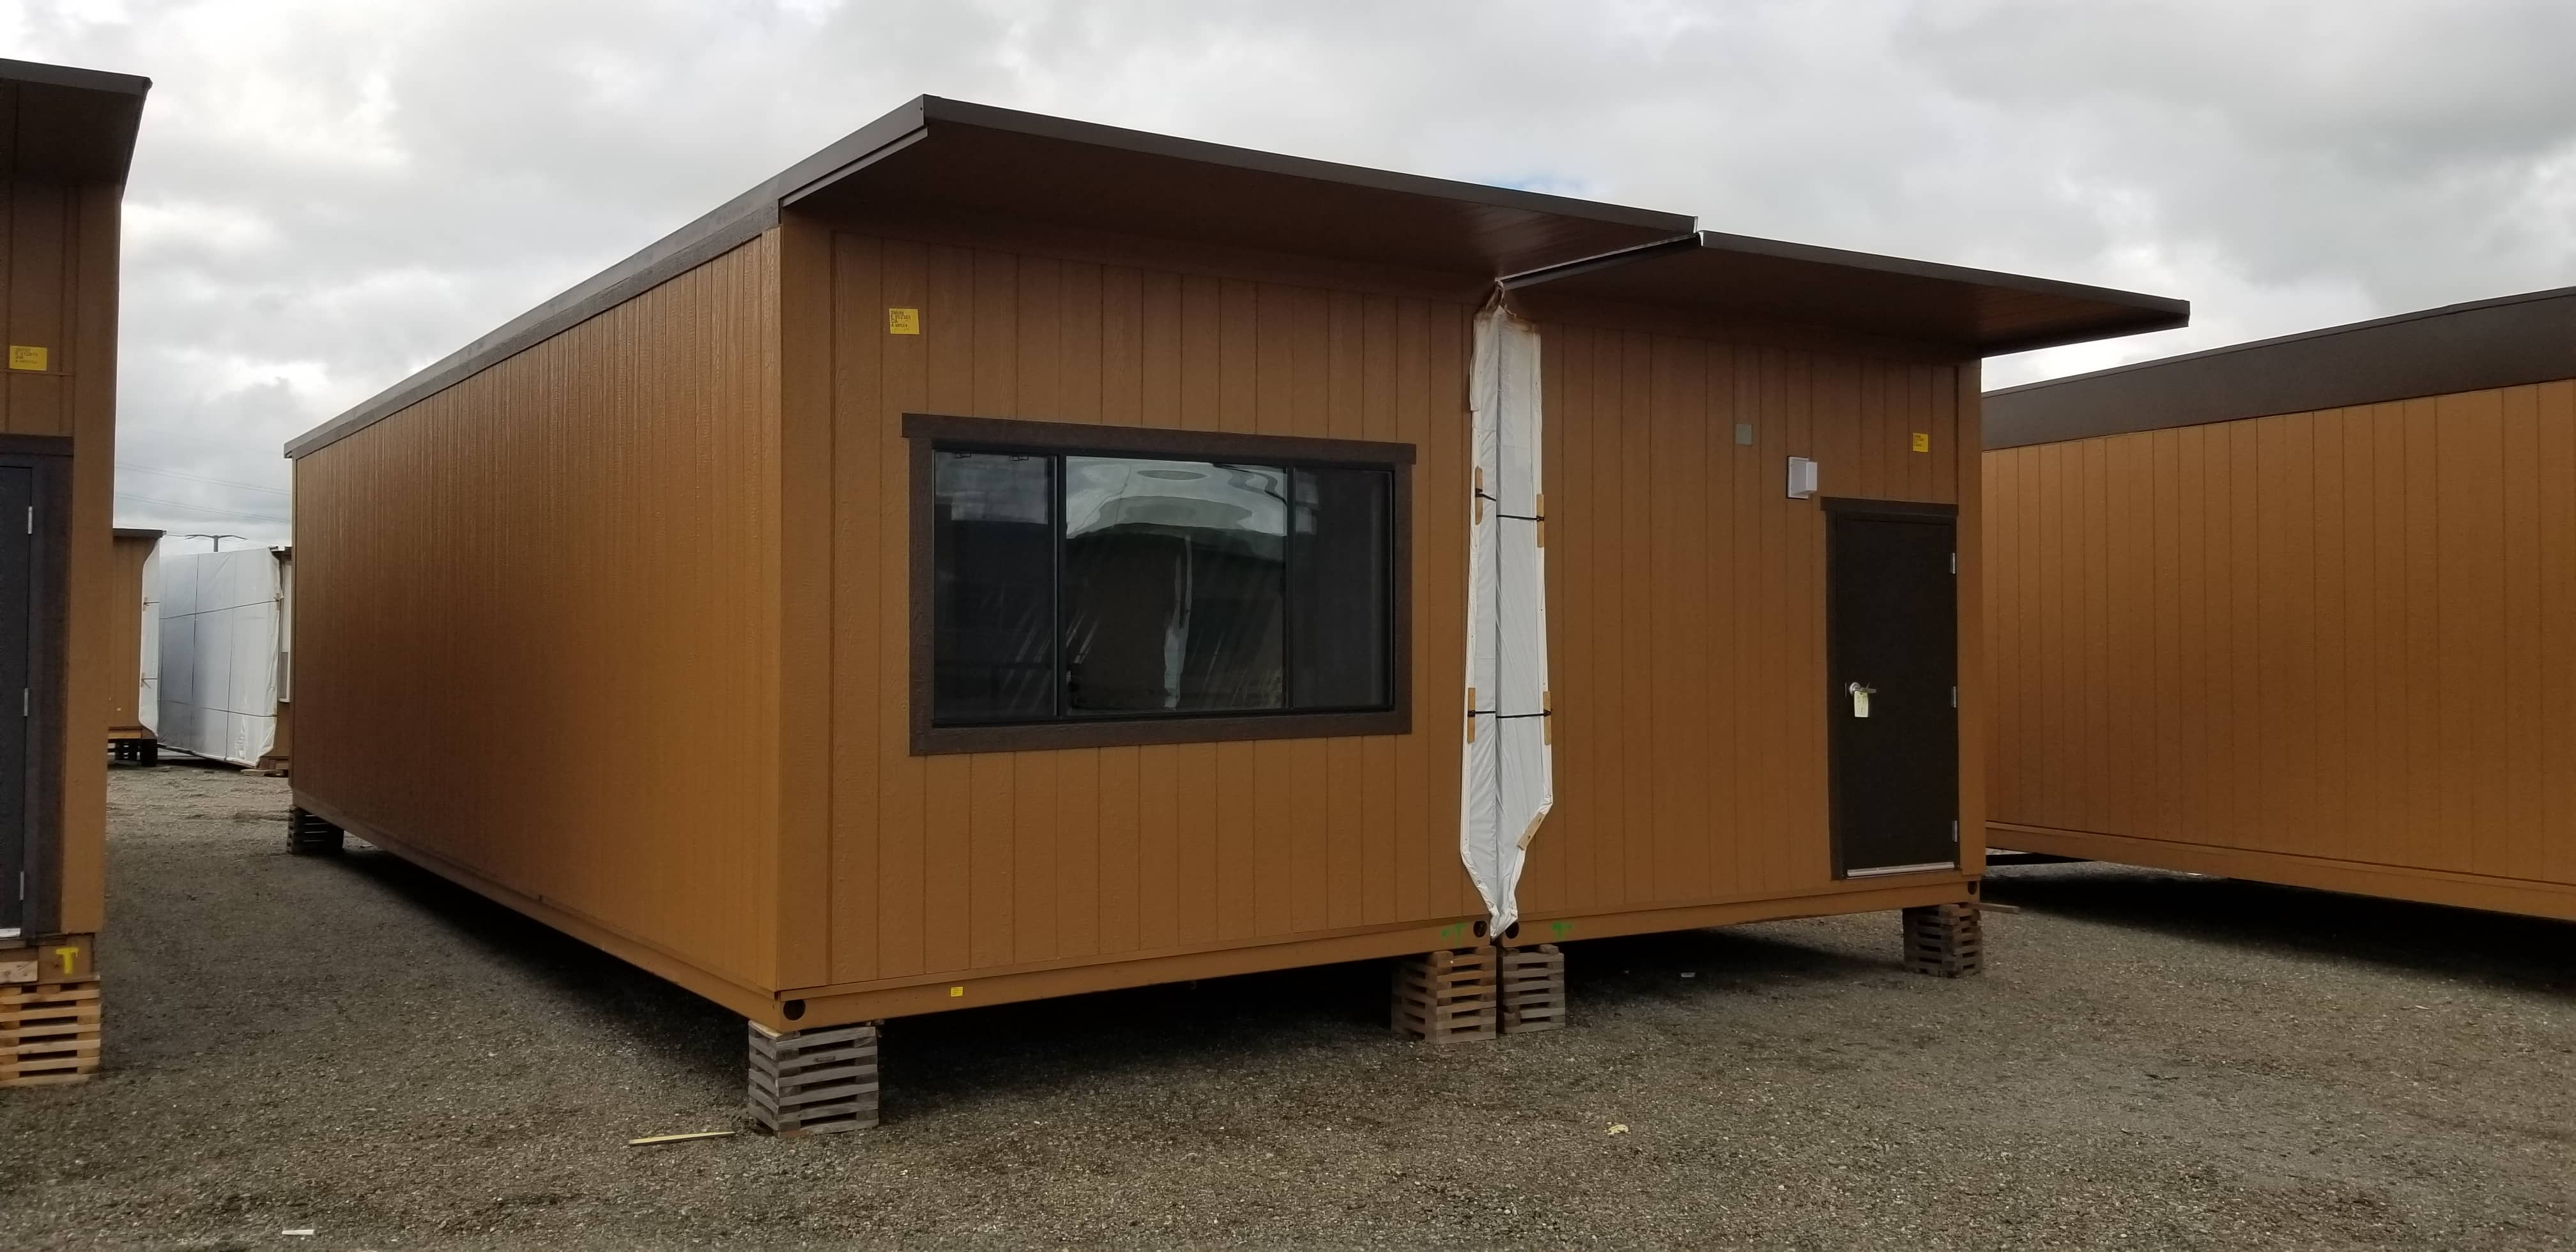 Used Mobile Office Trailers & Modular Buildings for Sale | Immediate